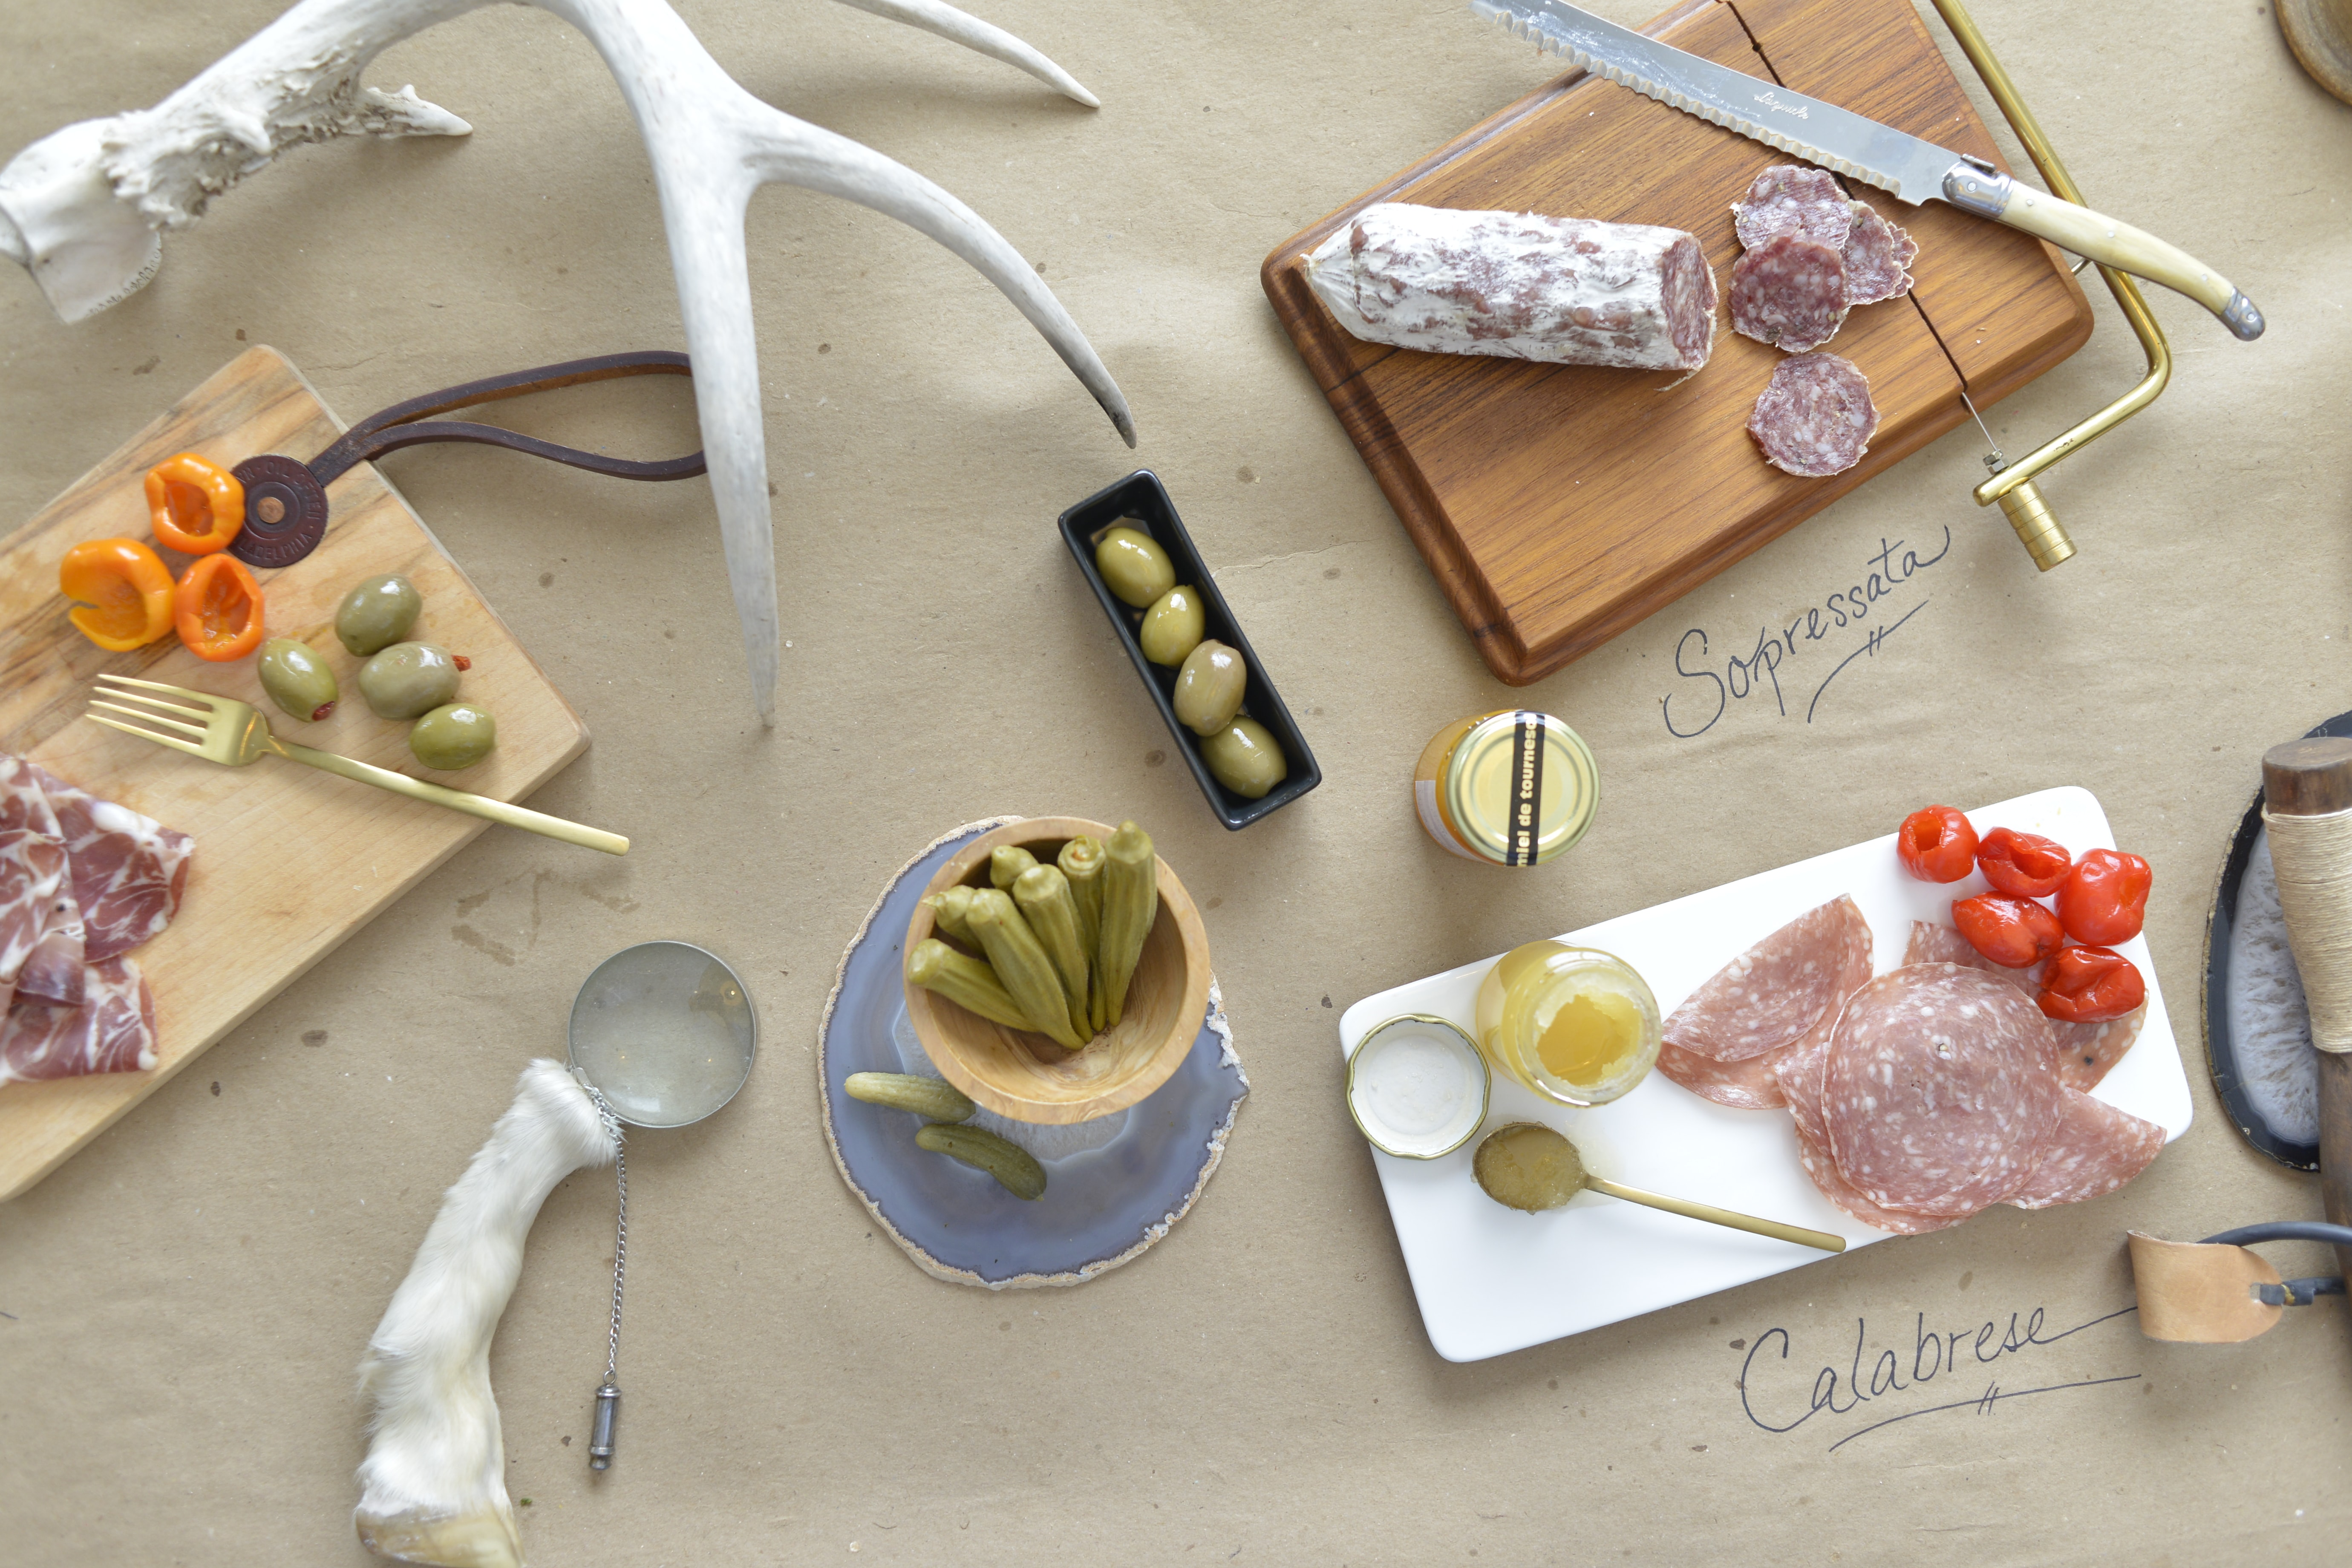 How to Arrange a Charcuterie Board Like a Rockstar